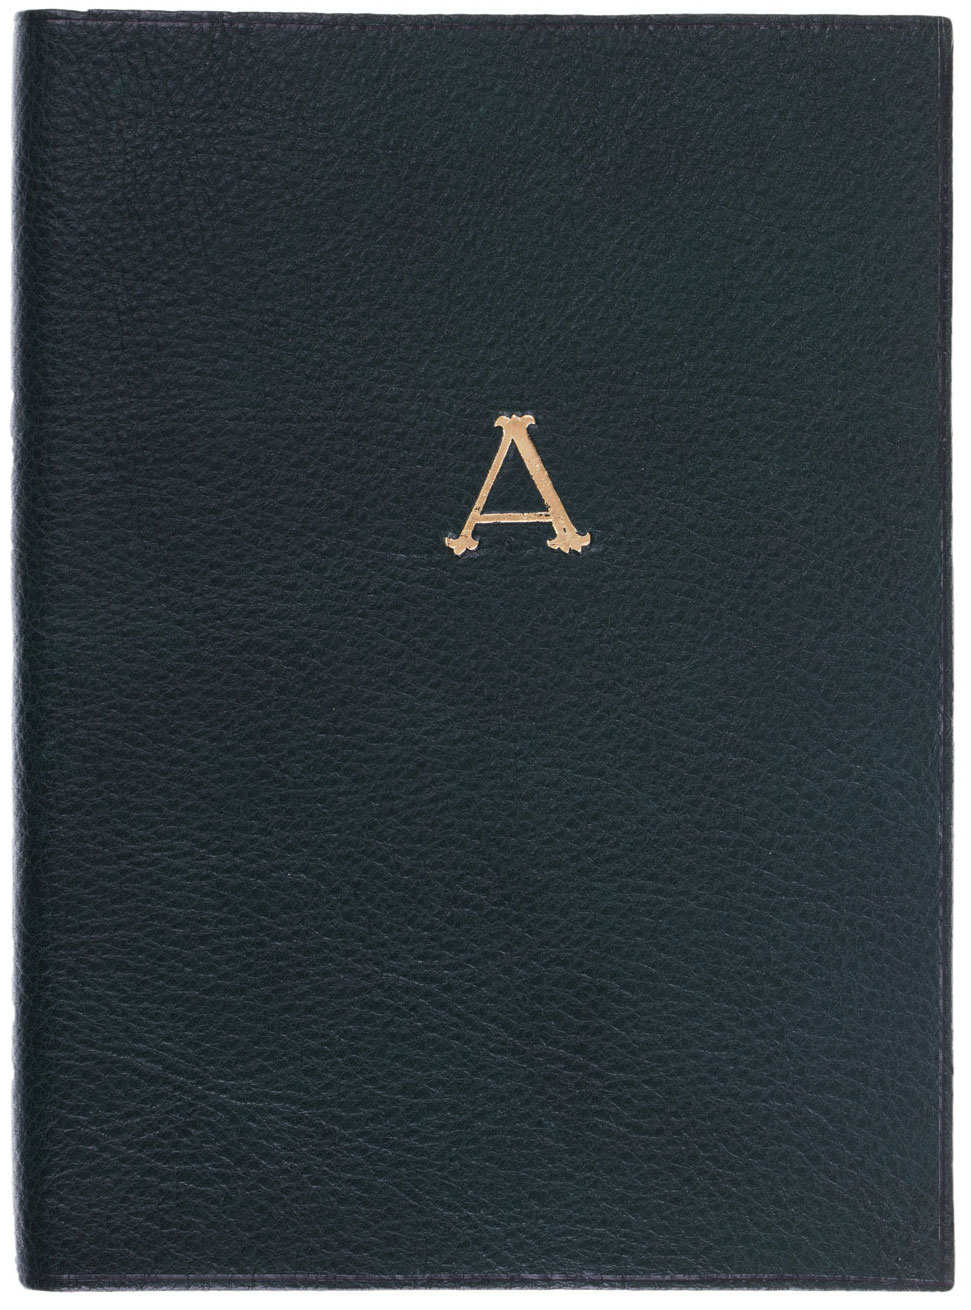 Giannini, Monogramma Leather Notebook.